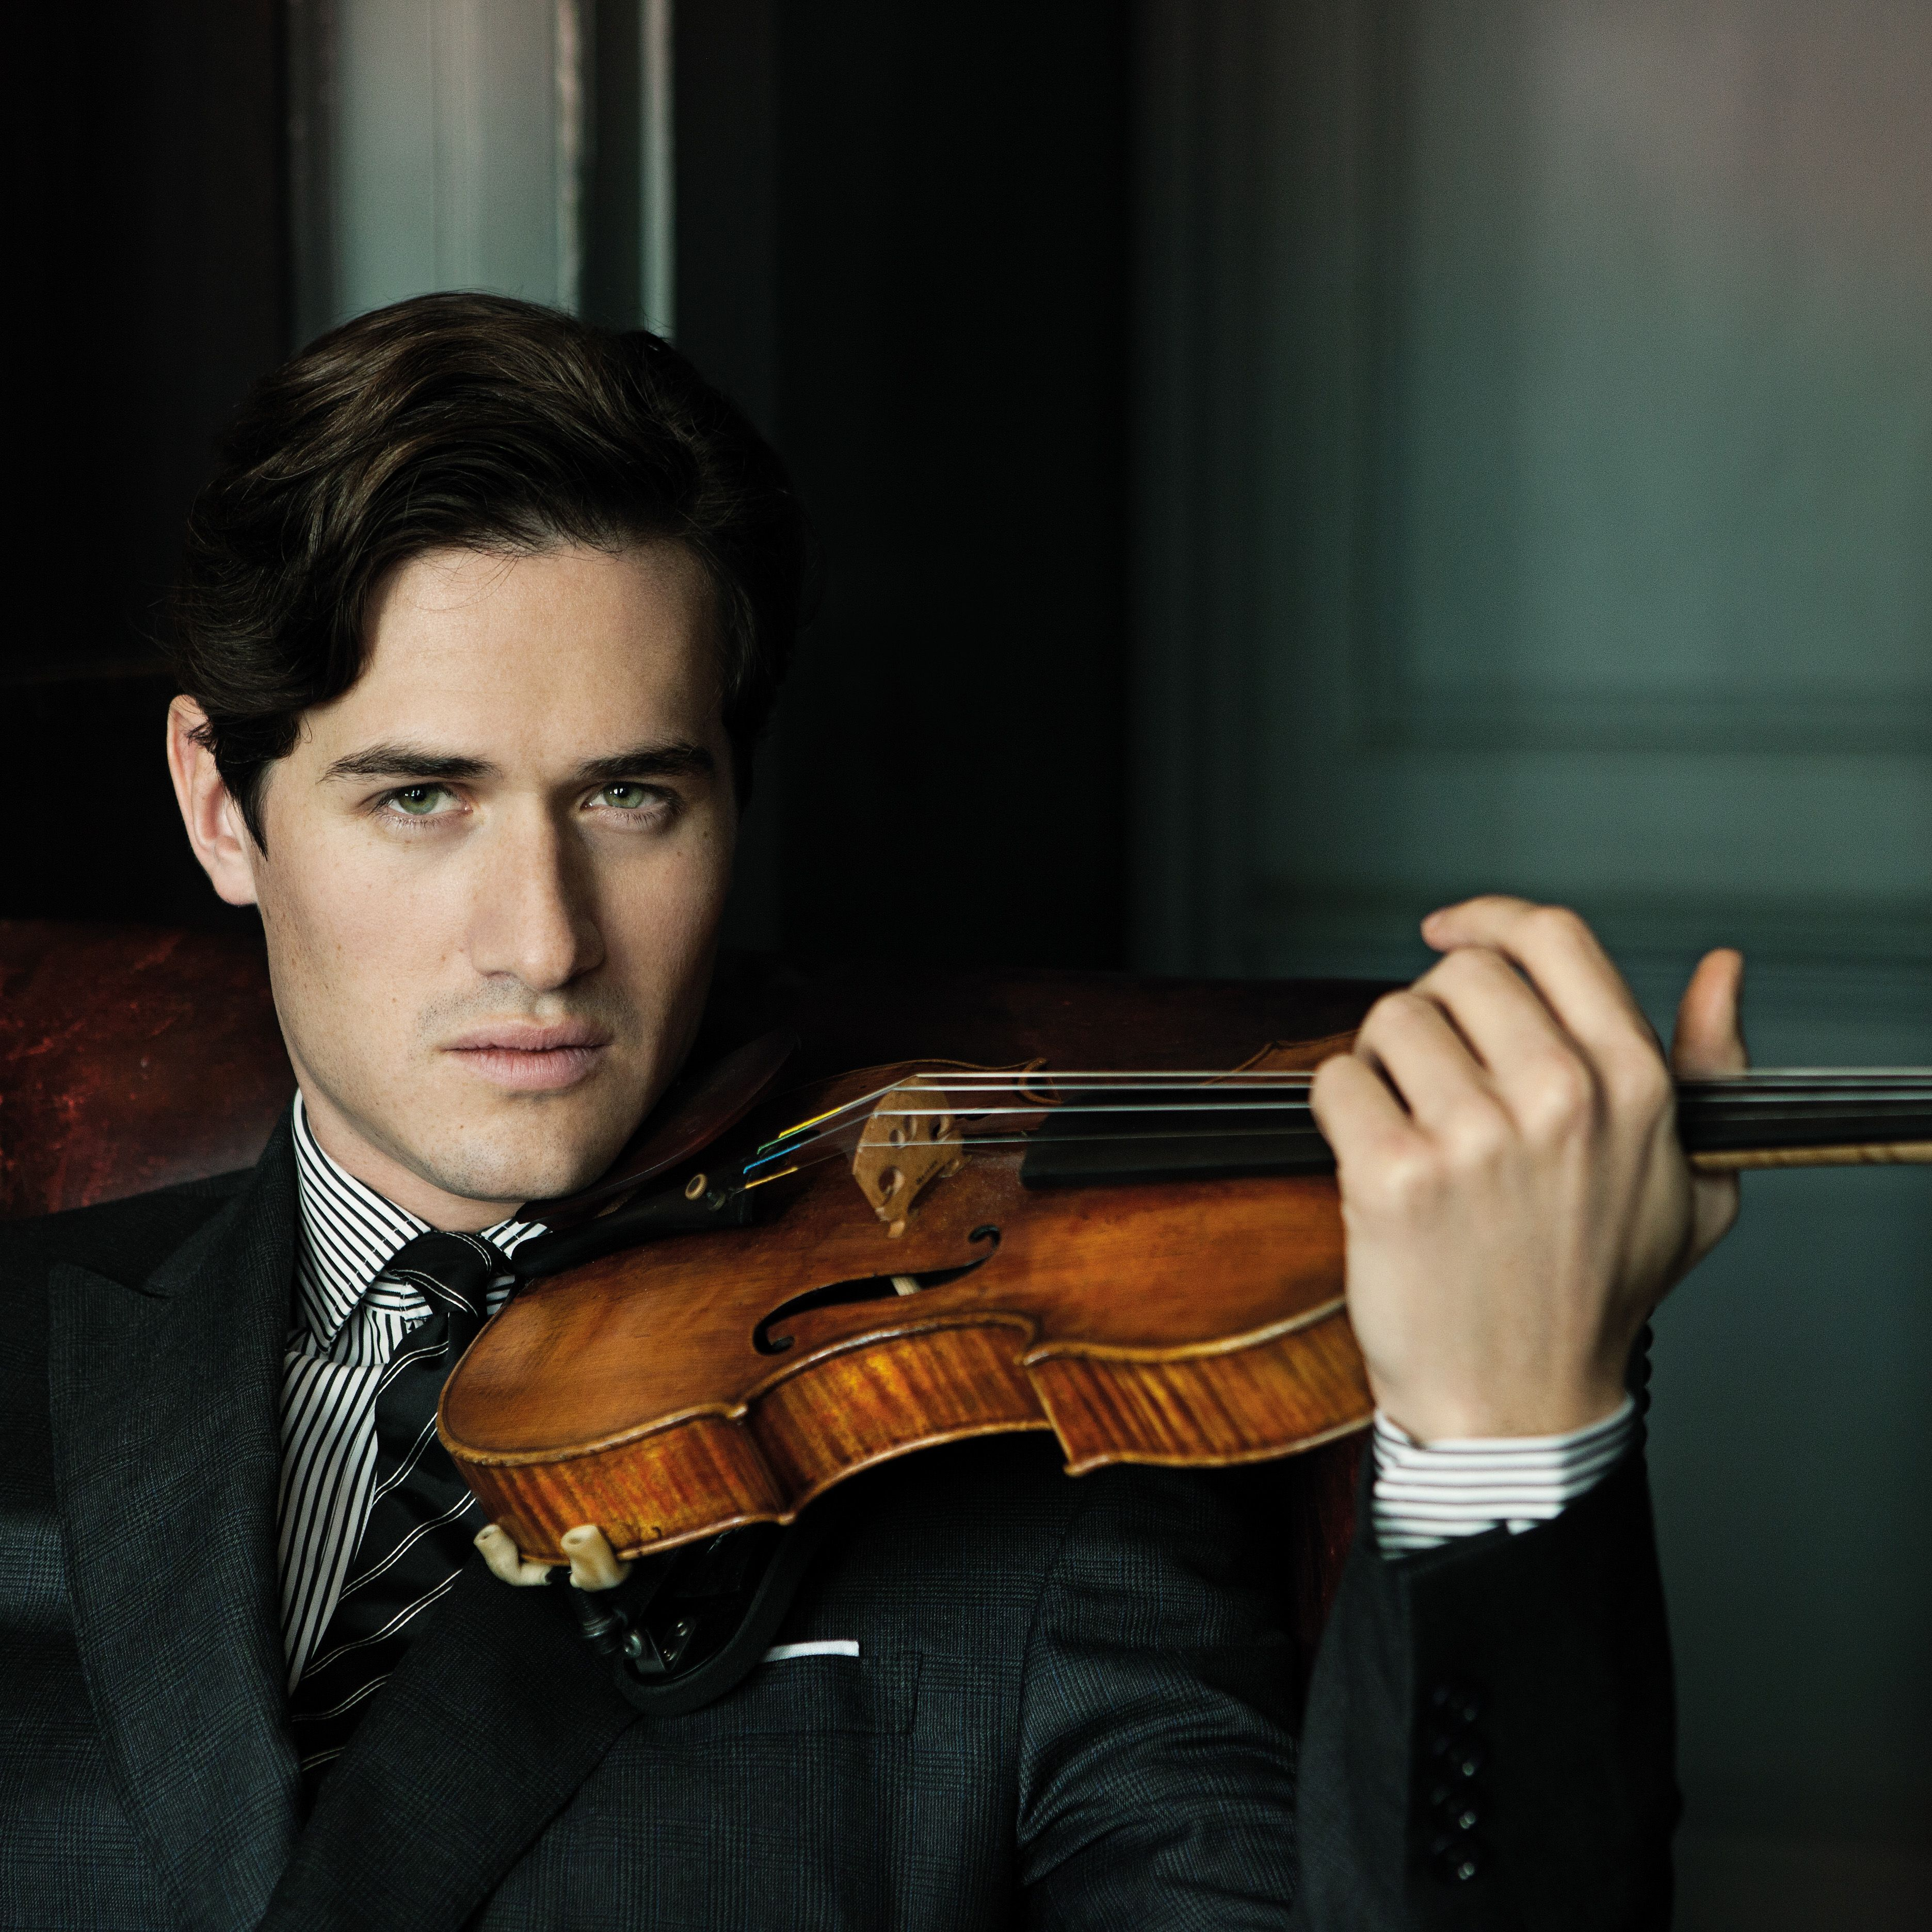 "Charlie Siem apologizes profusely for his delay in calling&#x3B; he has only just arrived in Scot- land after a missed flight. Is the British violinist there for a concert? ""I'm actually going shooting with my sister's husband,"" says the Eton-educated 28-year-old, his accent sleekly posh. ""It sounds quite gentlemanly, doesn't it? Until I get out on the fields with my gun and it becomes a complete mess!"" Siem is much more adept with his violin. Known for his graceful stage presence and romantic sound, he recently toured Europe playing selections from <em>U</em><em>n</em><em>de</em><em>r</em><em> </em><em>th</em><em>e</em><em> </em><em>Sta</em><em>r</em><em>s</em>, his album of orchestral encores. ""With something like the violin, you've got to figure out a unique way of playing that suits you,"" he says. ""It's such a physical thing, and you have to really listen. Your greatest asset as a musician is your ear."" Siem happens to have other assets as well. He has modeled for Dunhill and for an upcoming Hugo Boss campaign, and he appeared in Karl Lagerfeld's book <em>Th</em><em>e</em><em> </em><em>Littl</em><em>e</em><em> </em><em>Bla</em><em>c</em><em>k</em><em> </em><em>J</em><em>a</em><em>c</em><em>k</em><em>e</em><em>t</em><em> </em>at the Kaiser's own request—so, yes, he looks quite nice onstage in his trademark fitted suit. As for life offstage, ""I guess, for me, I haven't met the right person yet,"" he says. ""I always say that if I did, I'd change my life."" Music to our ears. <strong>Rebe</strong><strong>c</strong><strong>c</strong><strong>a</strong><strong> </strong><strong>Milzoff</strong>"